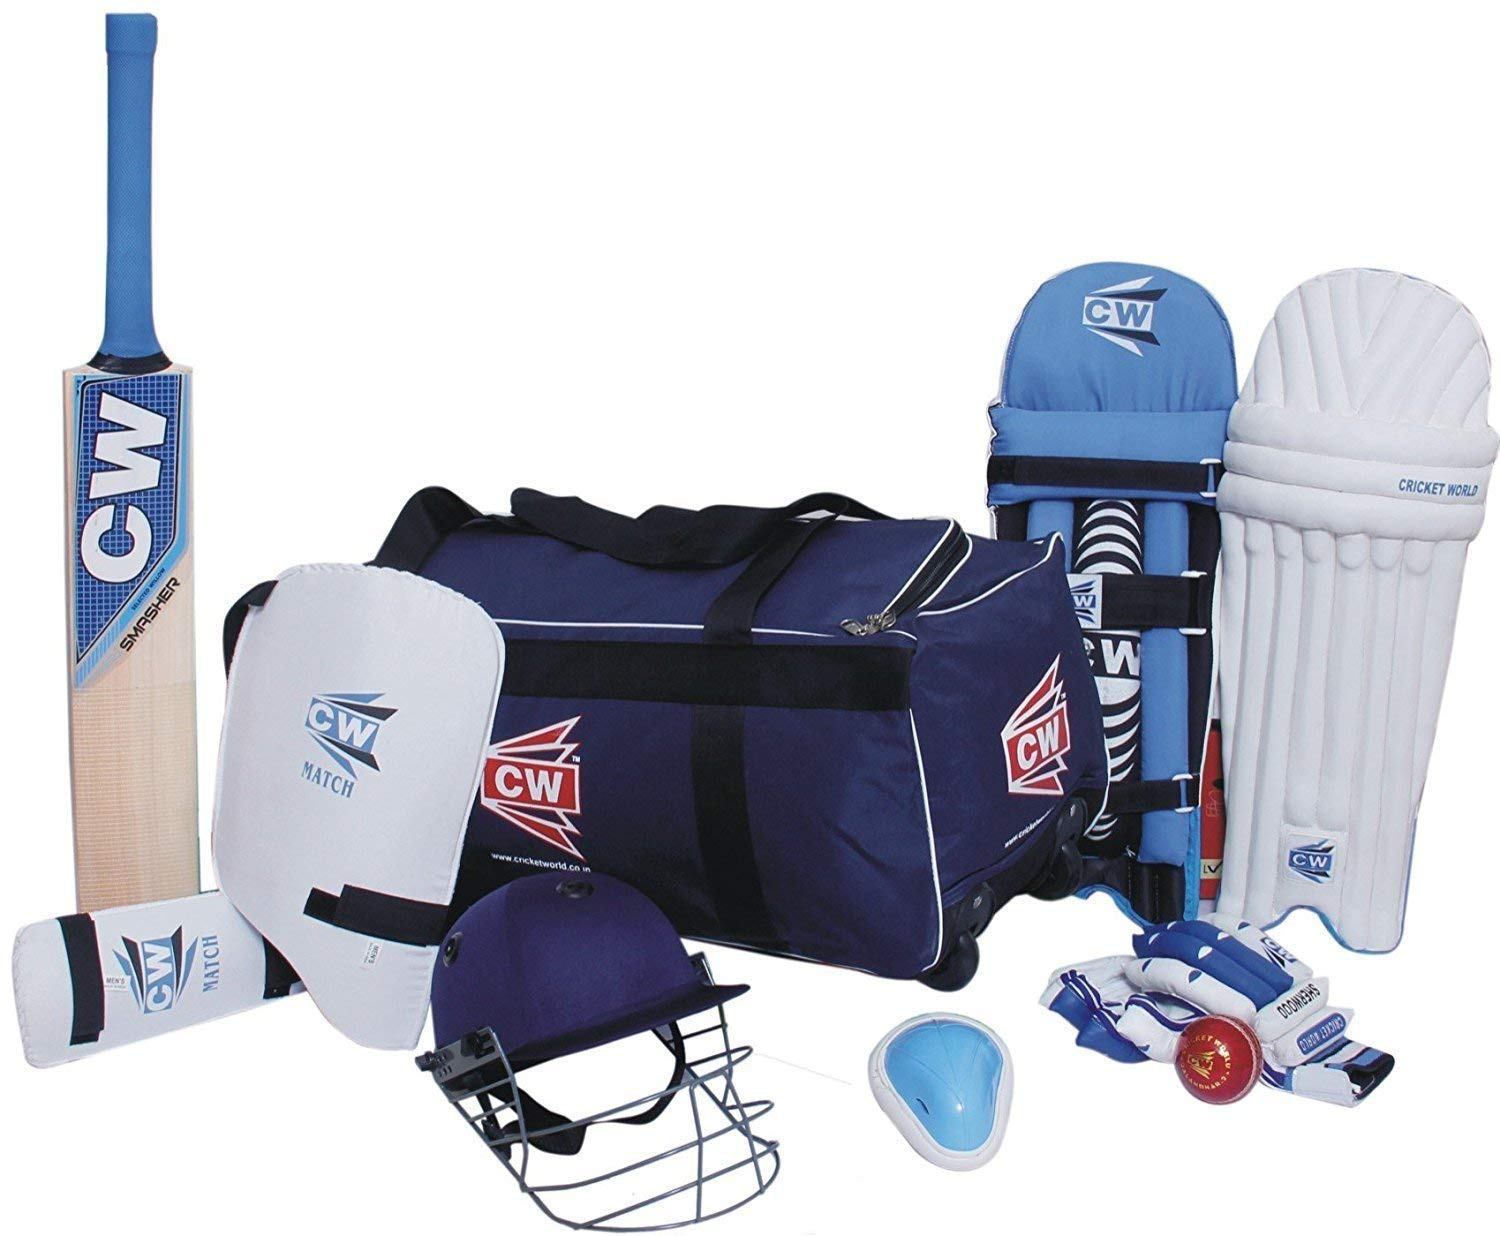 C&W Cricket World Lefty Academy 9 Item Junior Tournament Complete Kit Accessories Set Blue With Bat In Size 3 For 5-6 Yr Small Boys Designed For Left Handed Batsmen Full Of Batting Cricket Gears